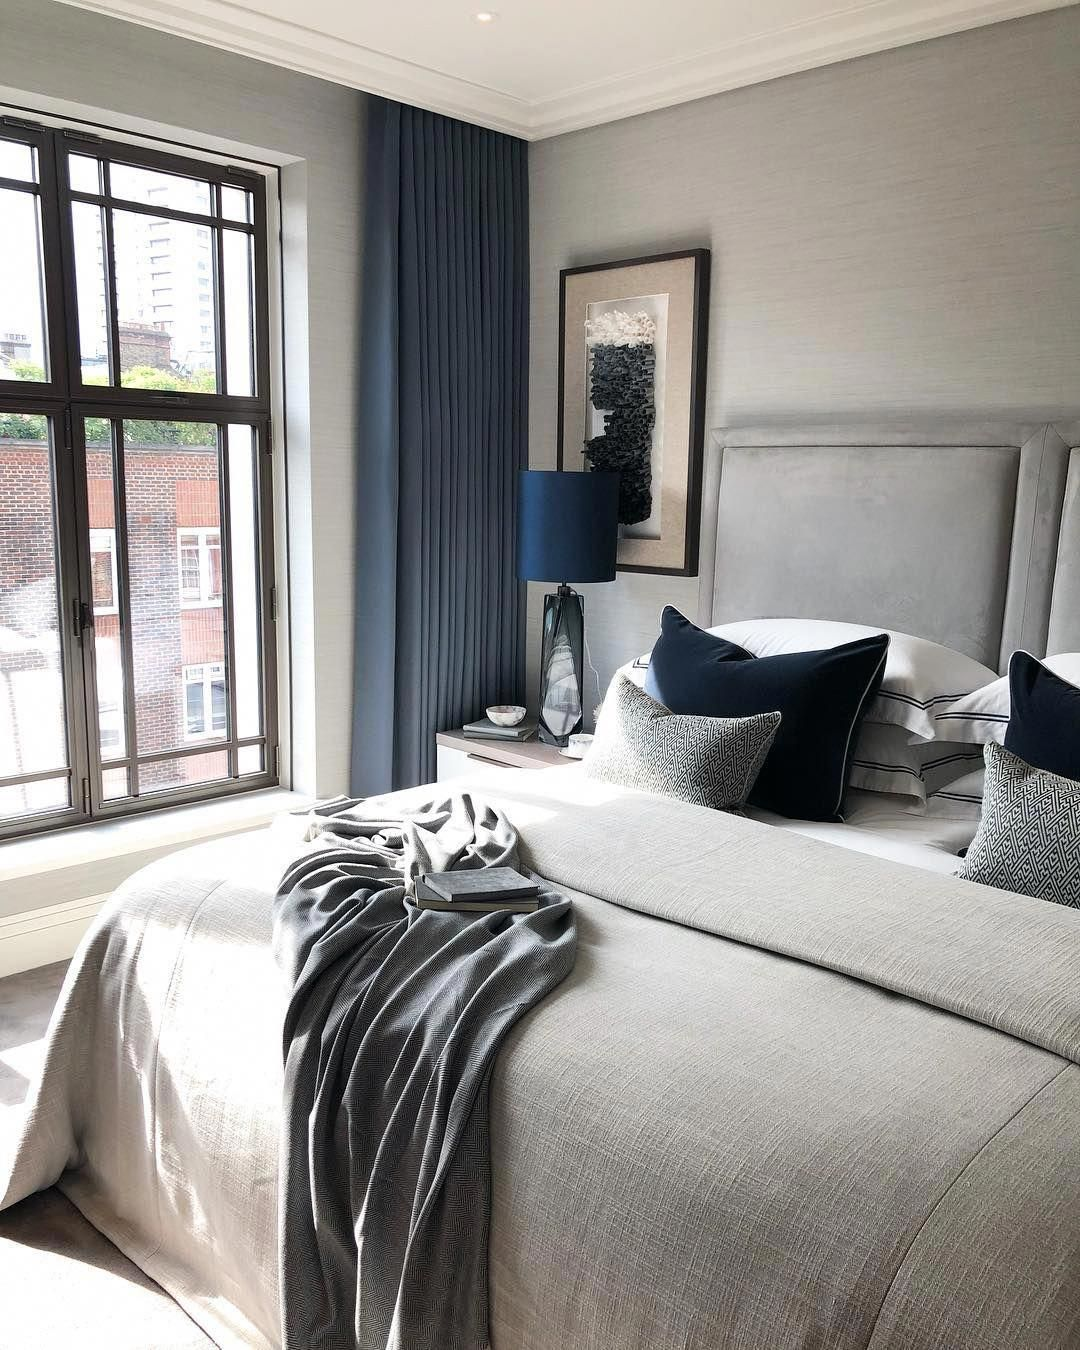 Top 30 Masculine Bedroom Part 2: A Masculine And Contemporary Bedroom In The New Build